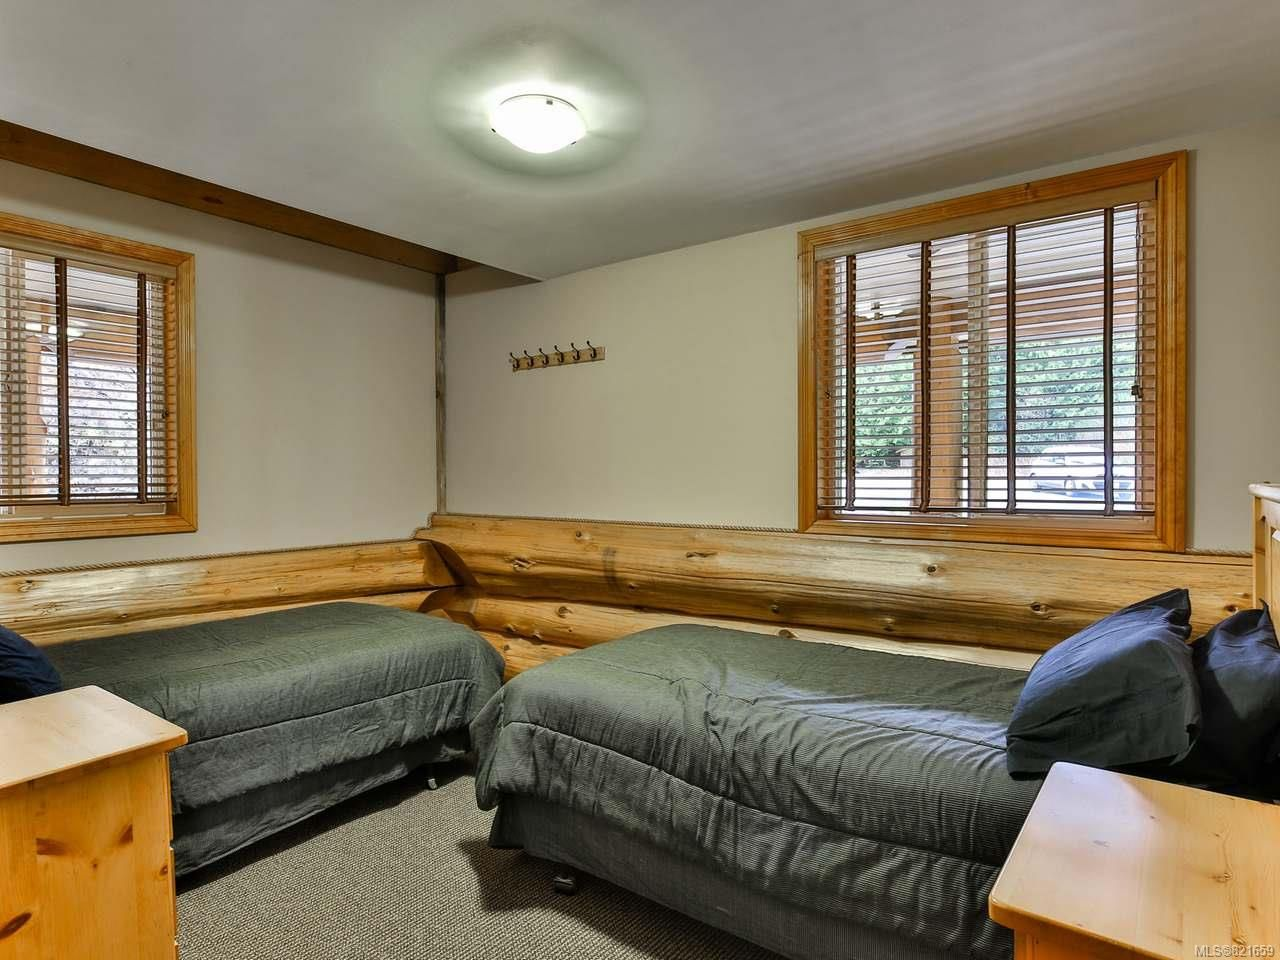 Photo 18: Photos: 1049 Helen Rd in UCLUELET: PA Ucluelet House for sale (Port Alberni)  : MLS®# 821659